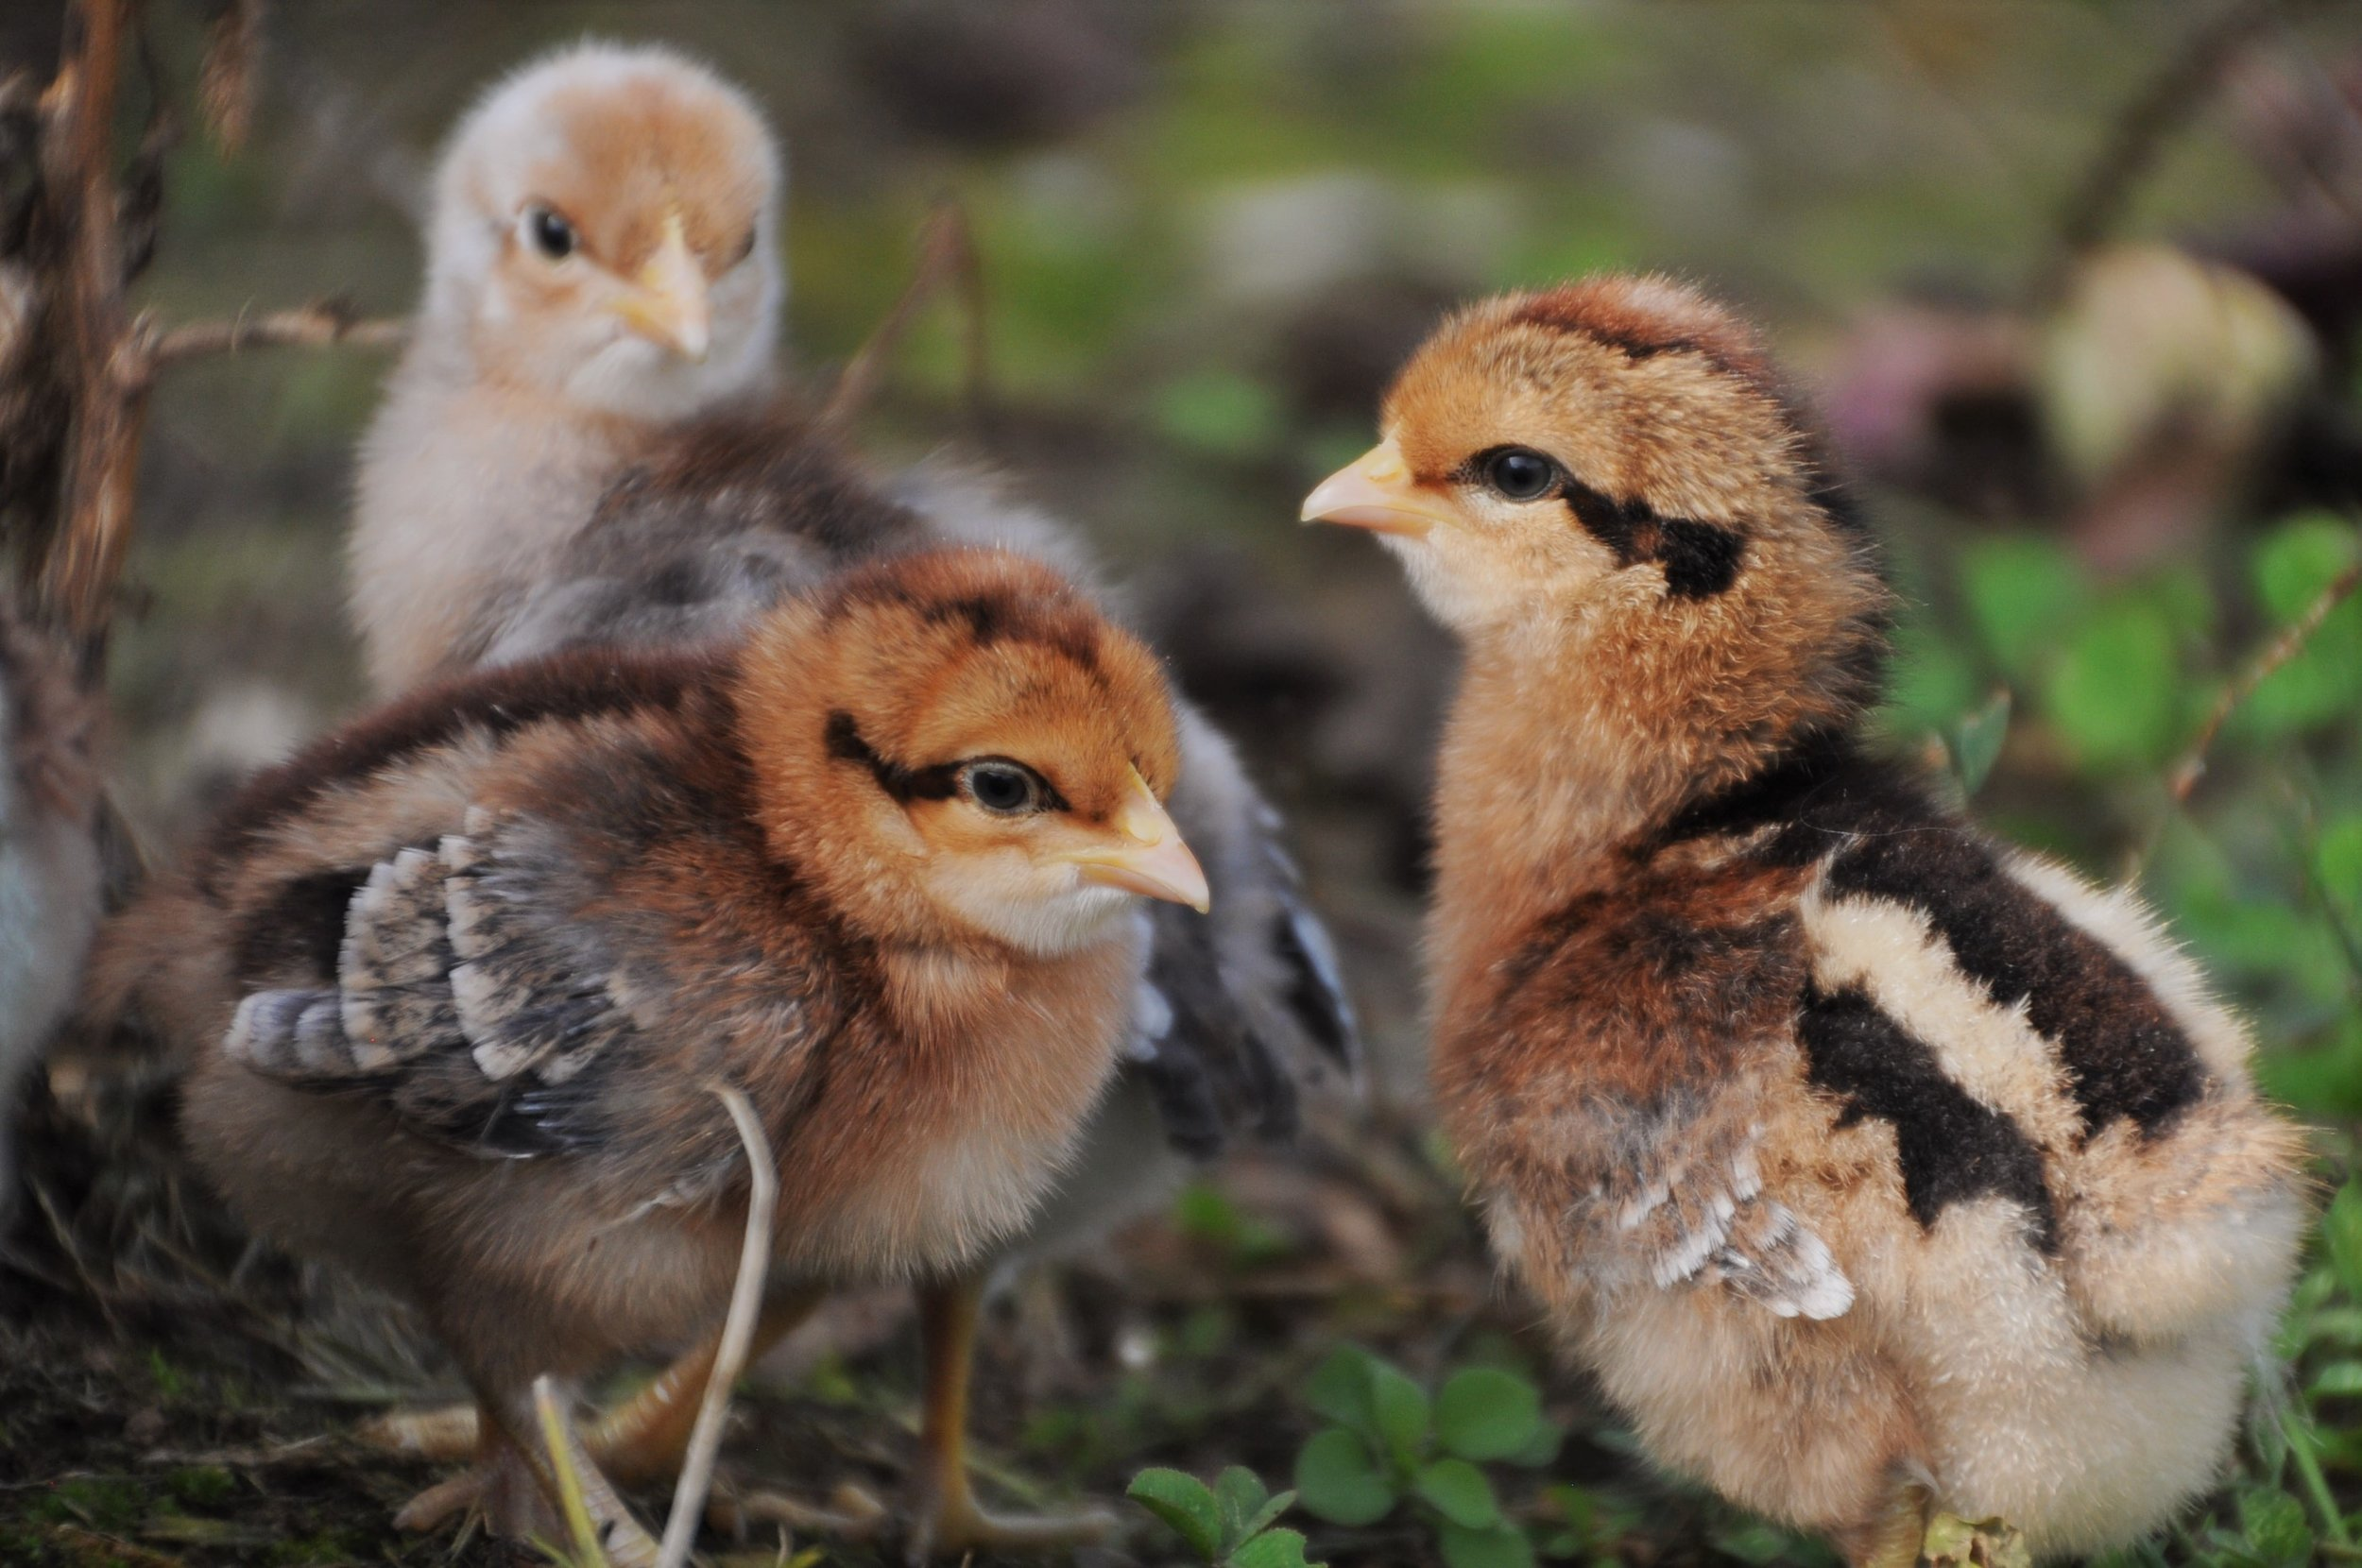 Bielefelder chicks.  The females in front, male in back